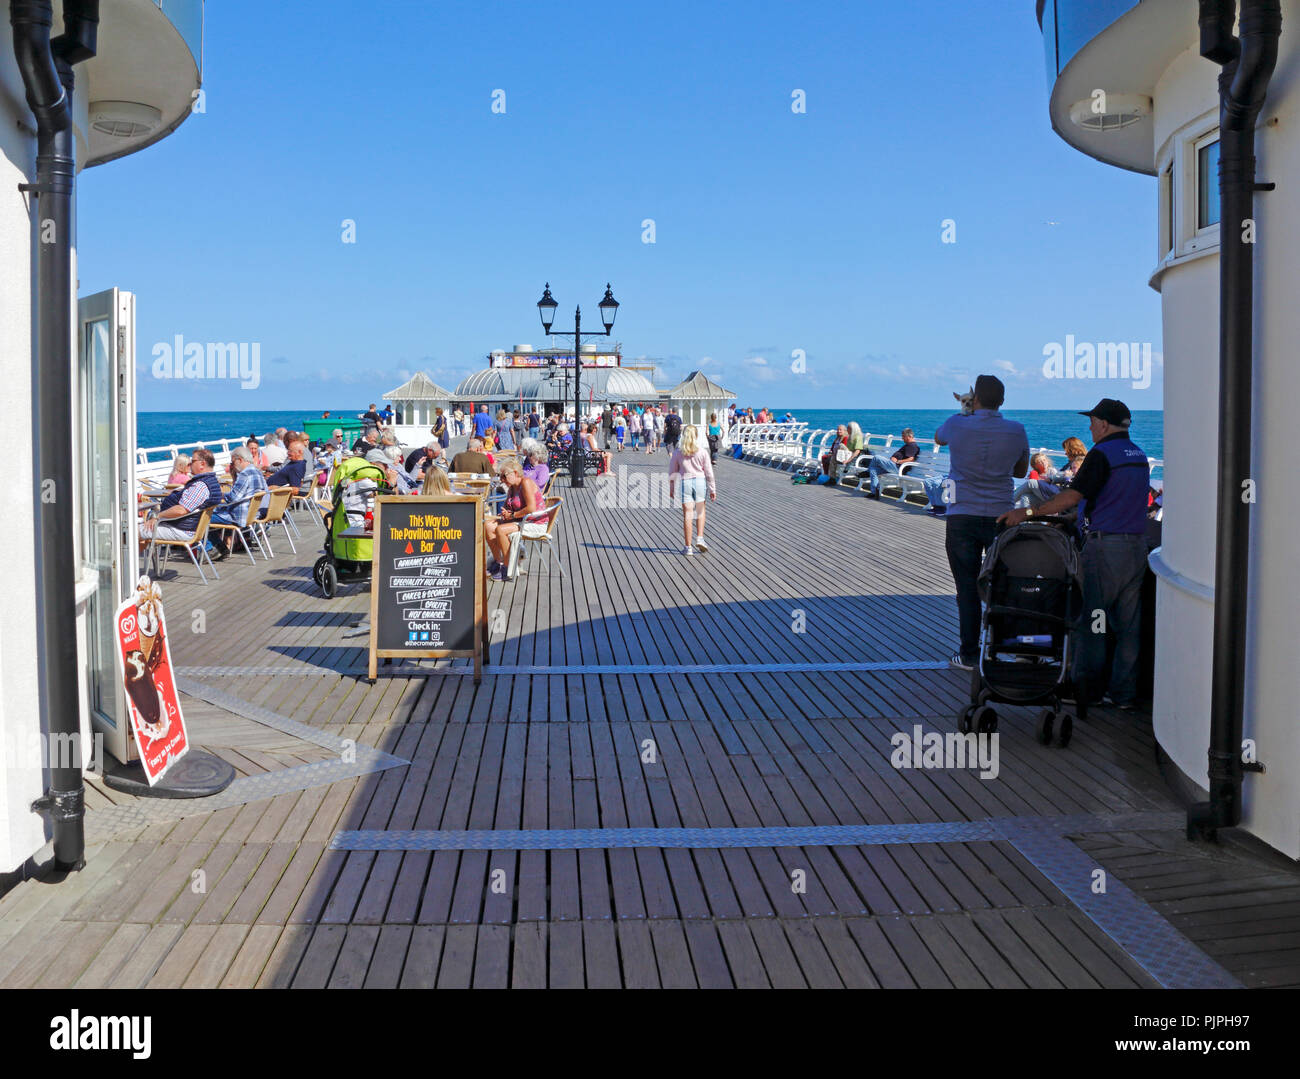 A view through the entrance onto the Pier at the North Norfolk seaside resort of Cromer, Norfolk, England, United Kingdom, Europe. - Stock Image